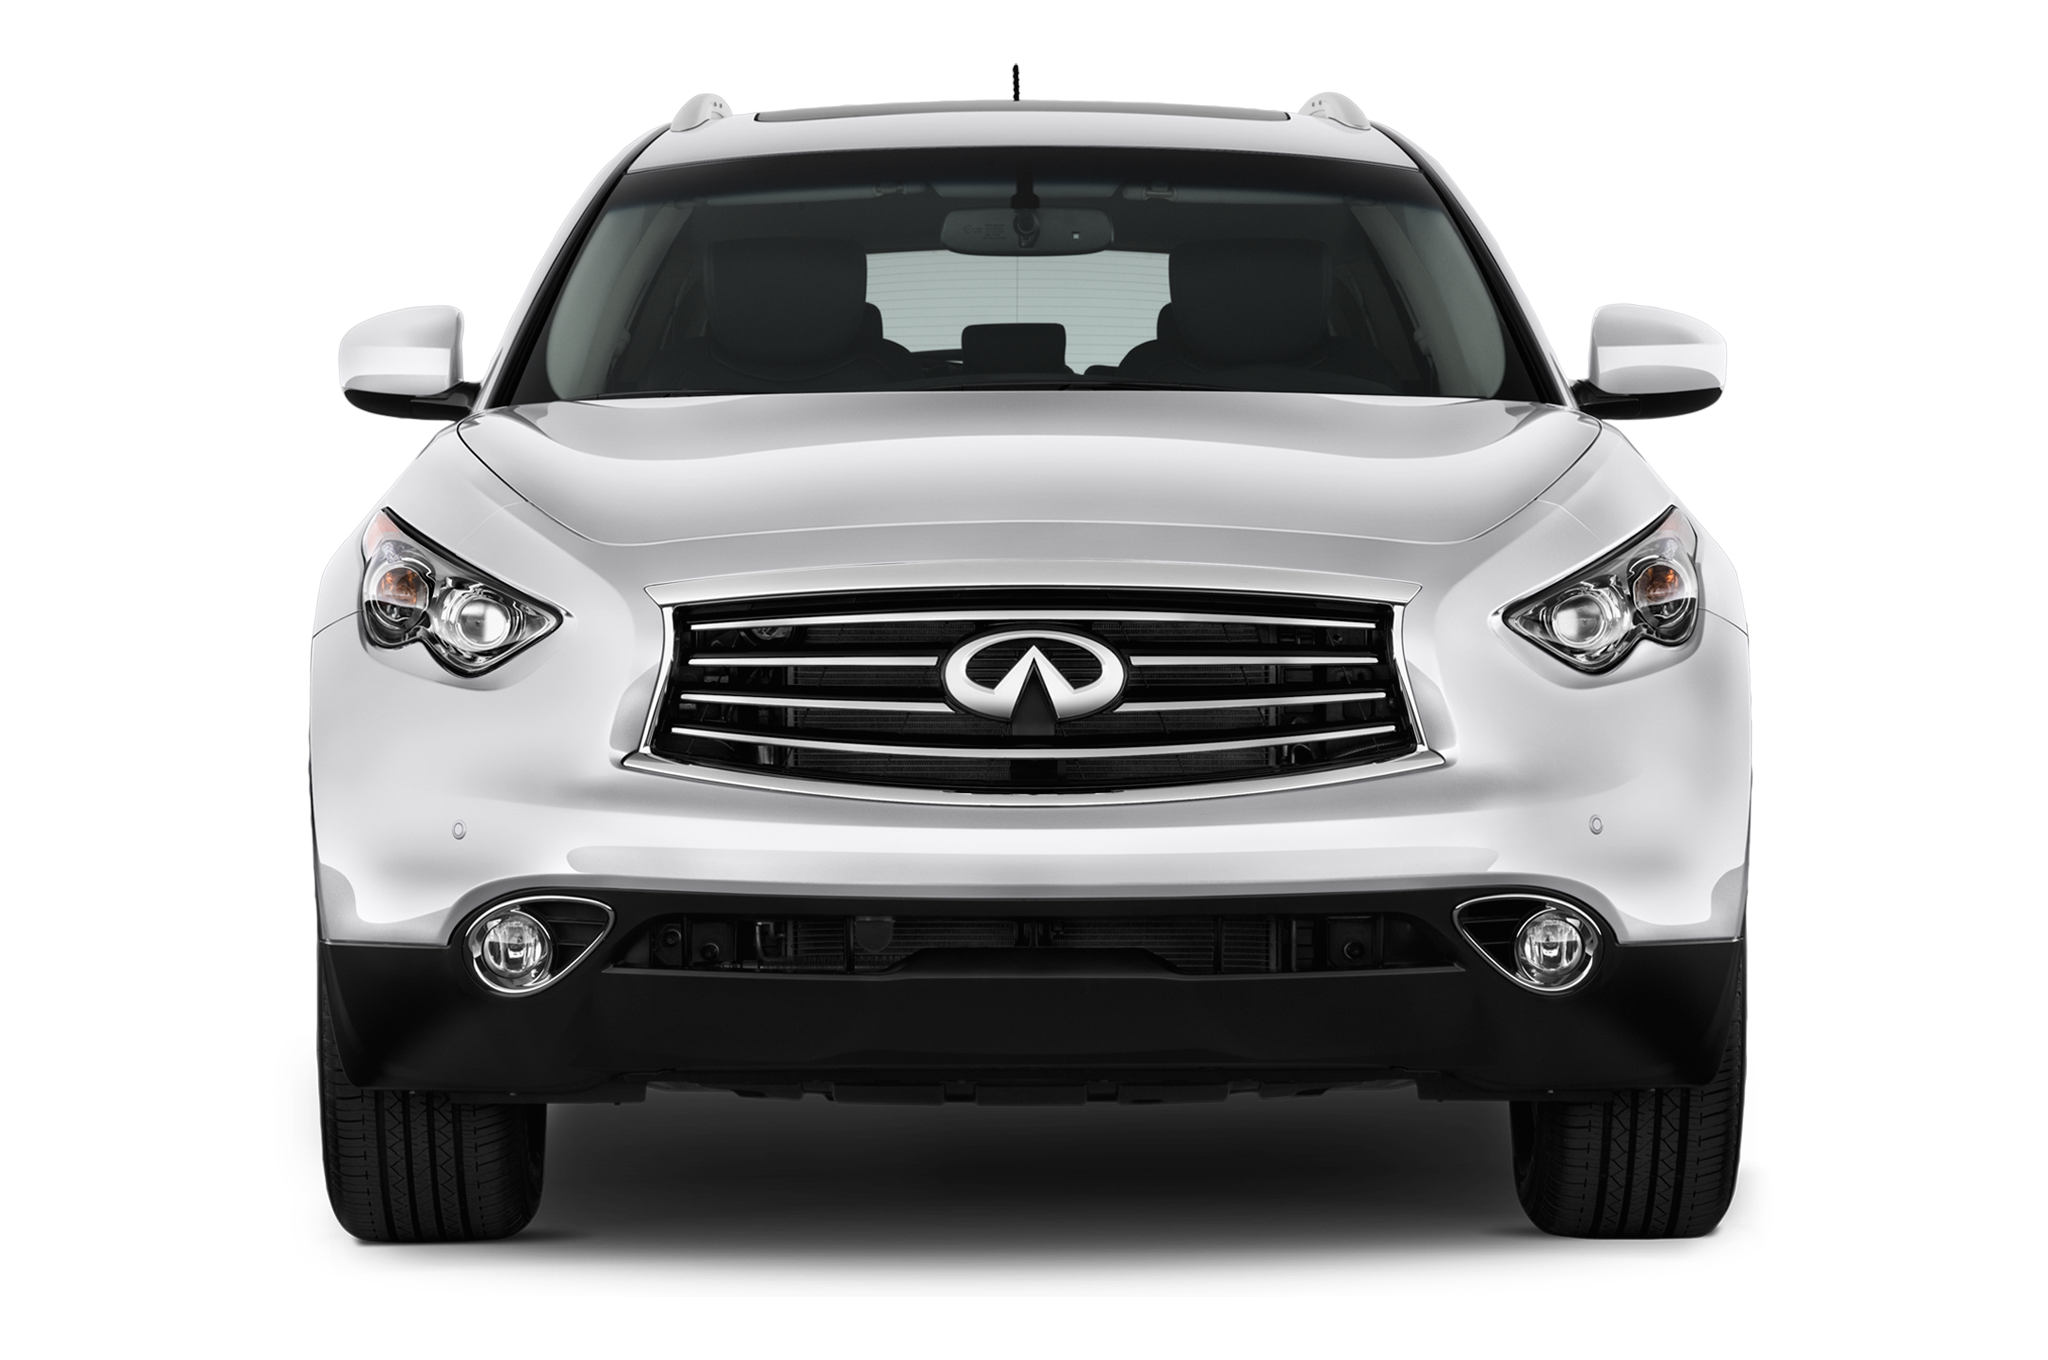 infinity trims infiniti autotrader options reviews price research photos suv specs ca